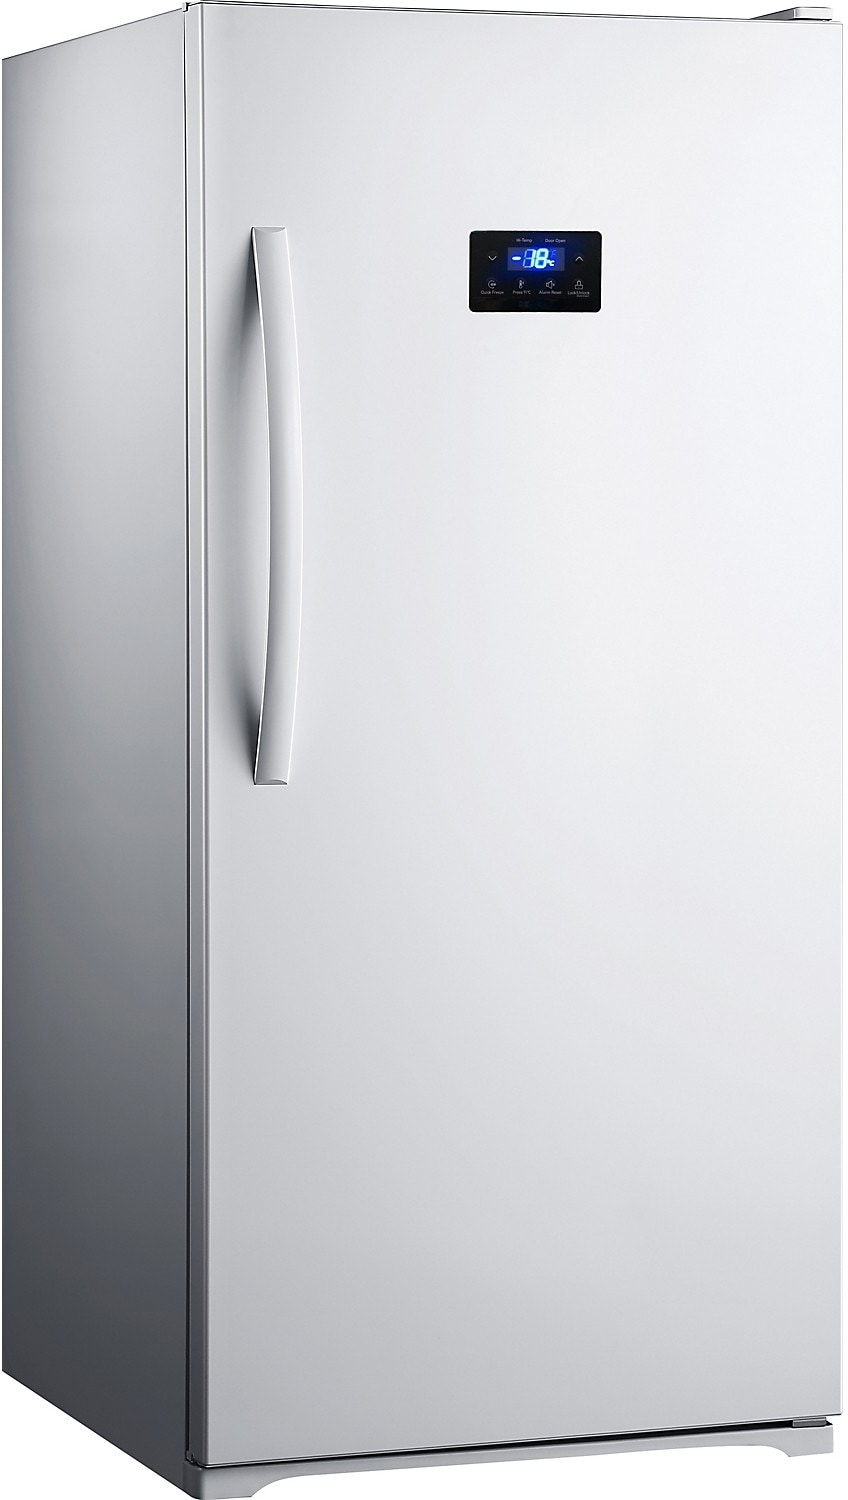 Vertical Freezers For Sale Mideaar 138 Cu Ft No Frost Upright Freezer White The Brick